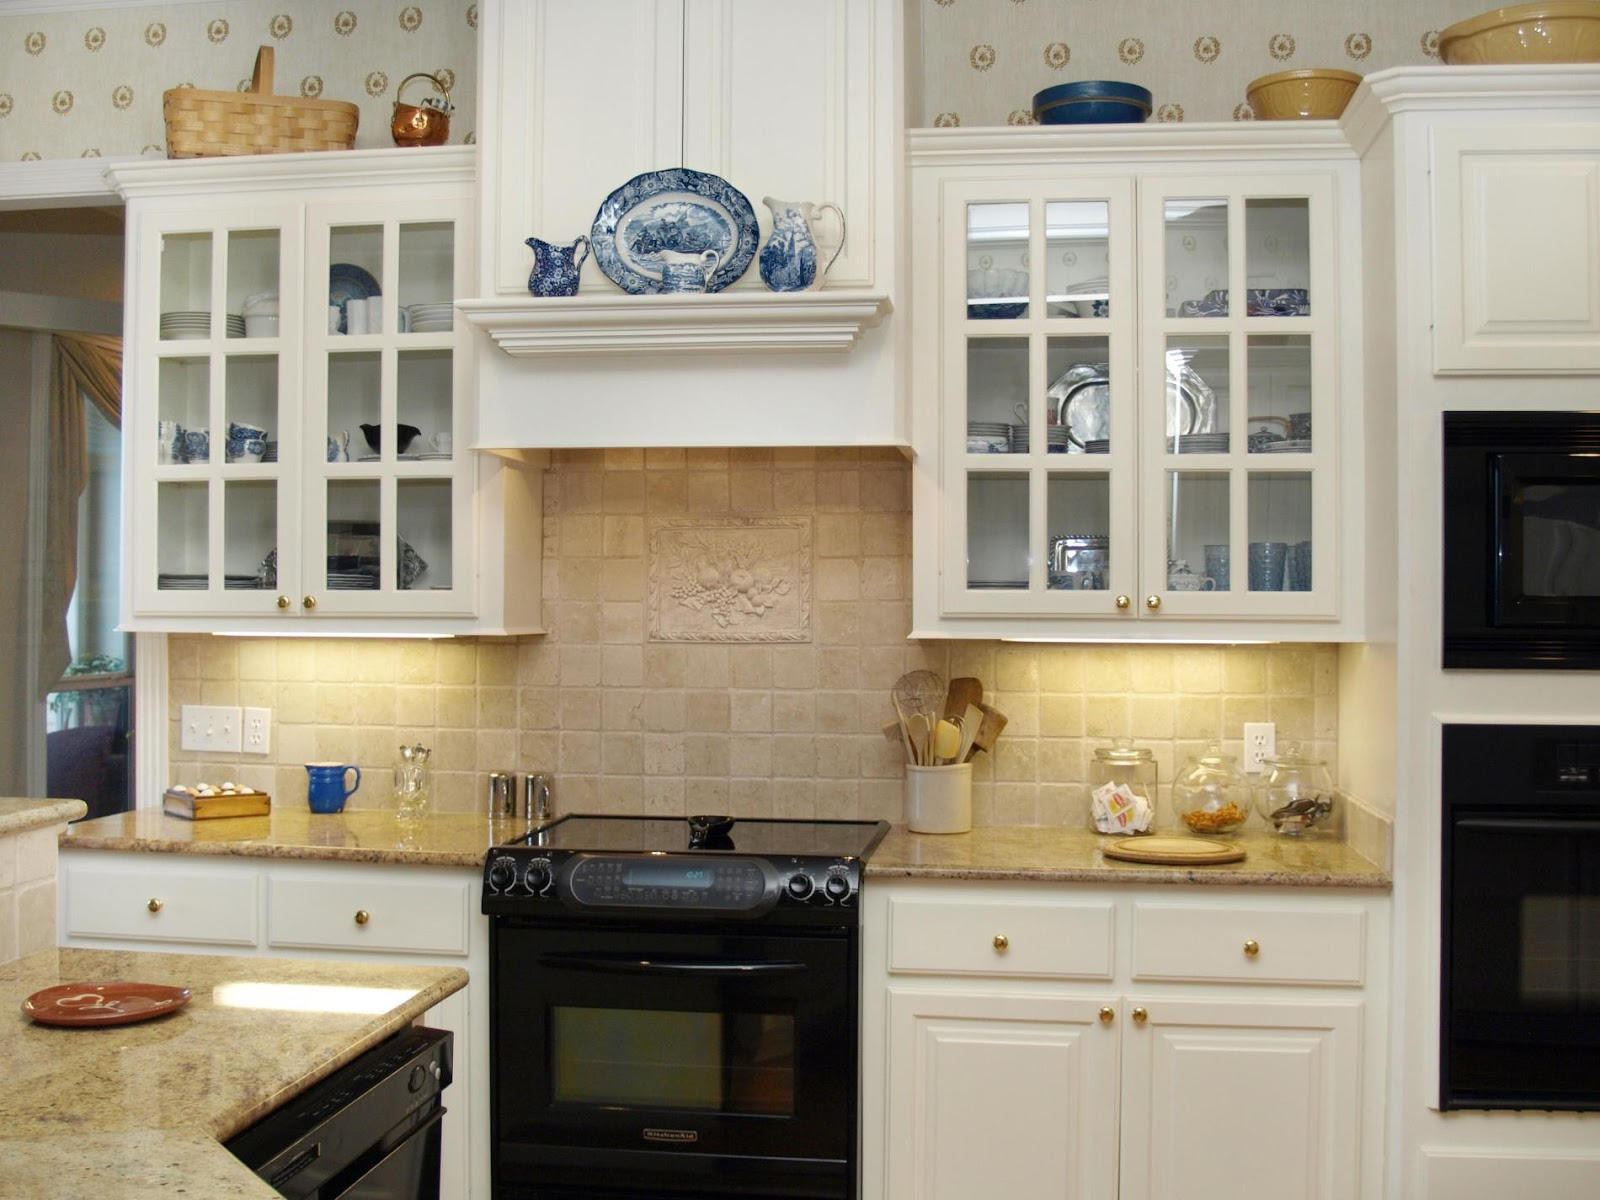 Kitchen shelves decoration dream house experience for Kitchen decor ideas